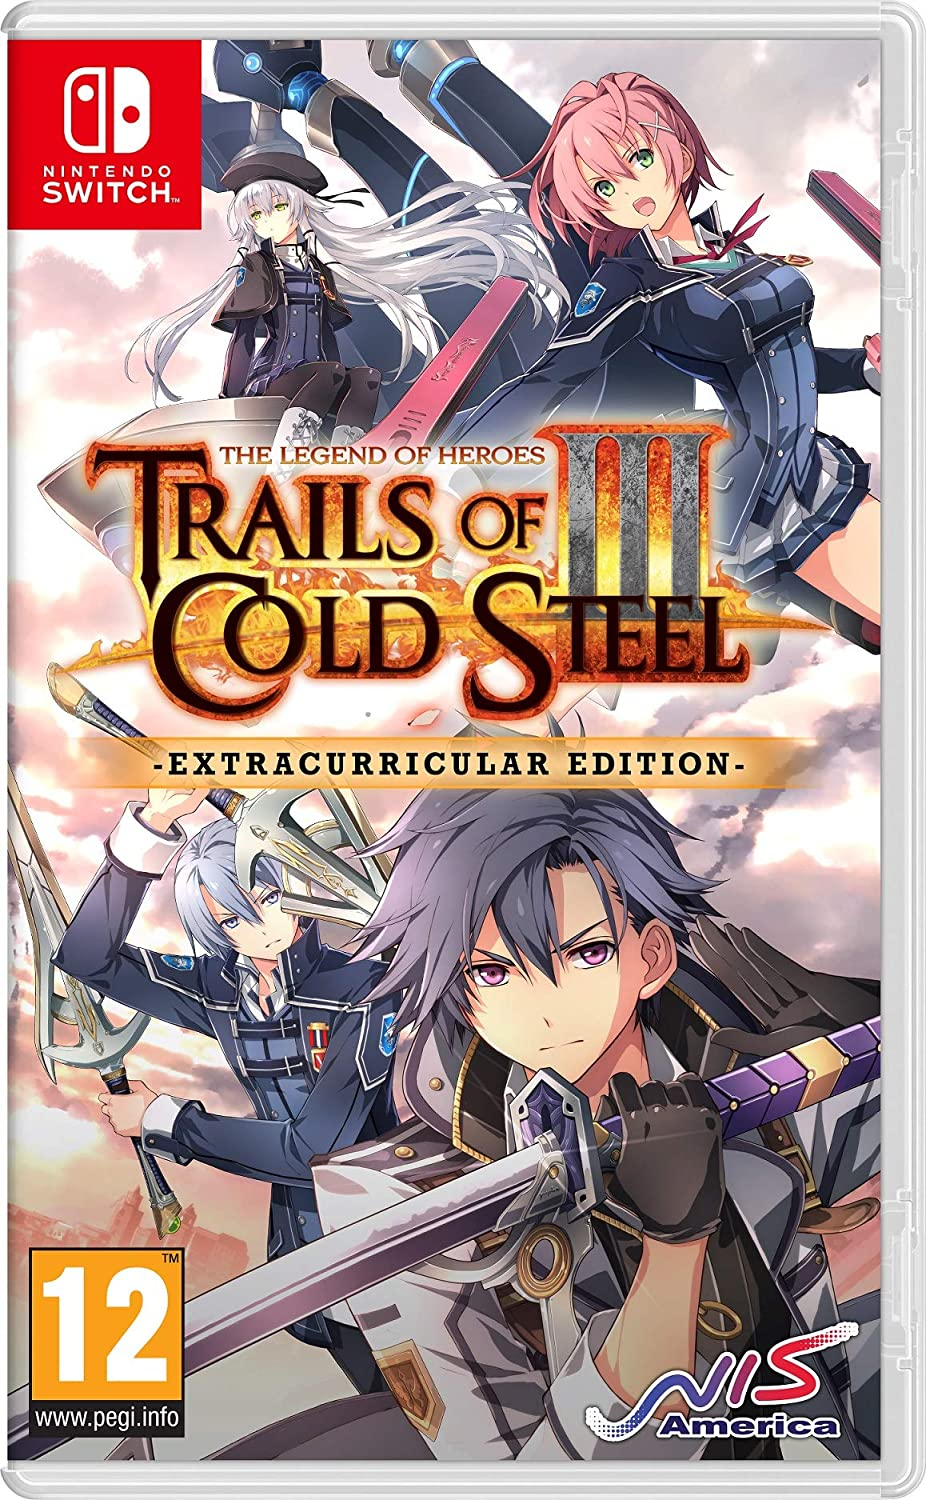 The Legend of Heroes: Trails of Cold Steel III (Extracurricular Edition) (Switch) - Nintendo Switch [Importación inglesa]: Amazon.es: Videojuegos